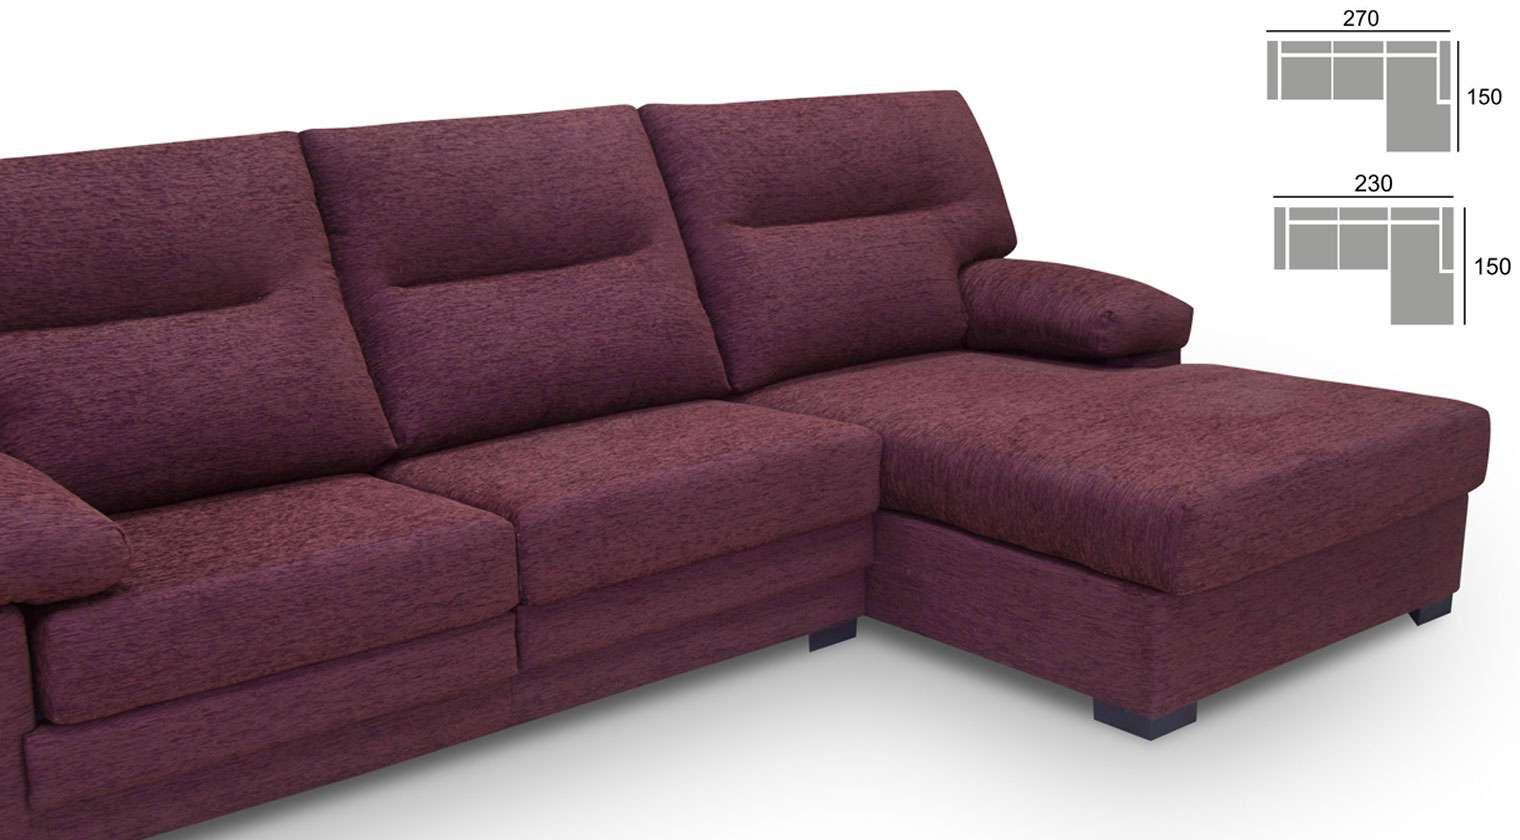 tumb-Chaise-Longue-tela-CERES-4